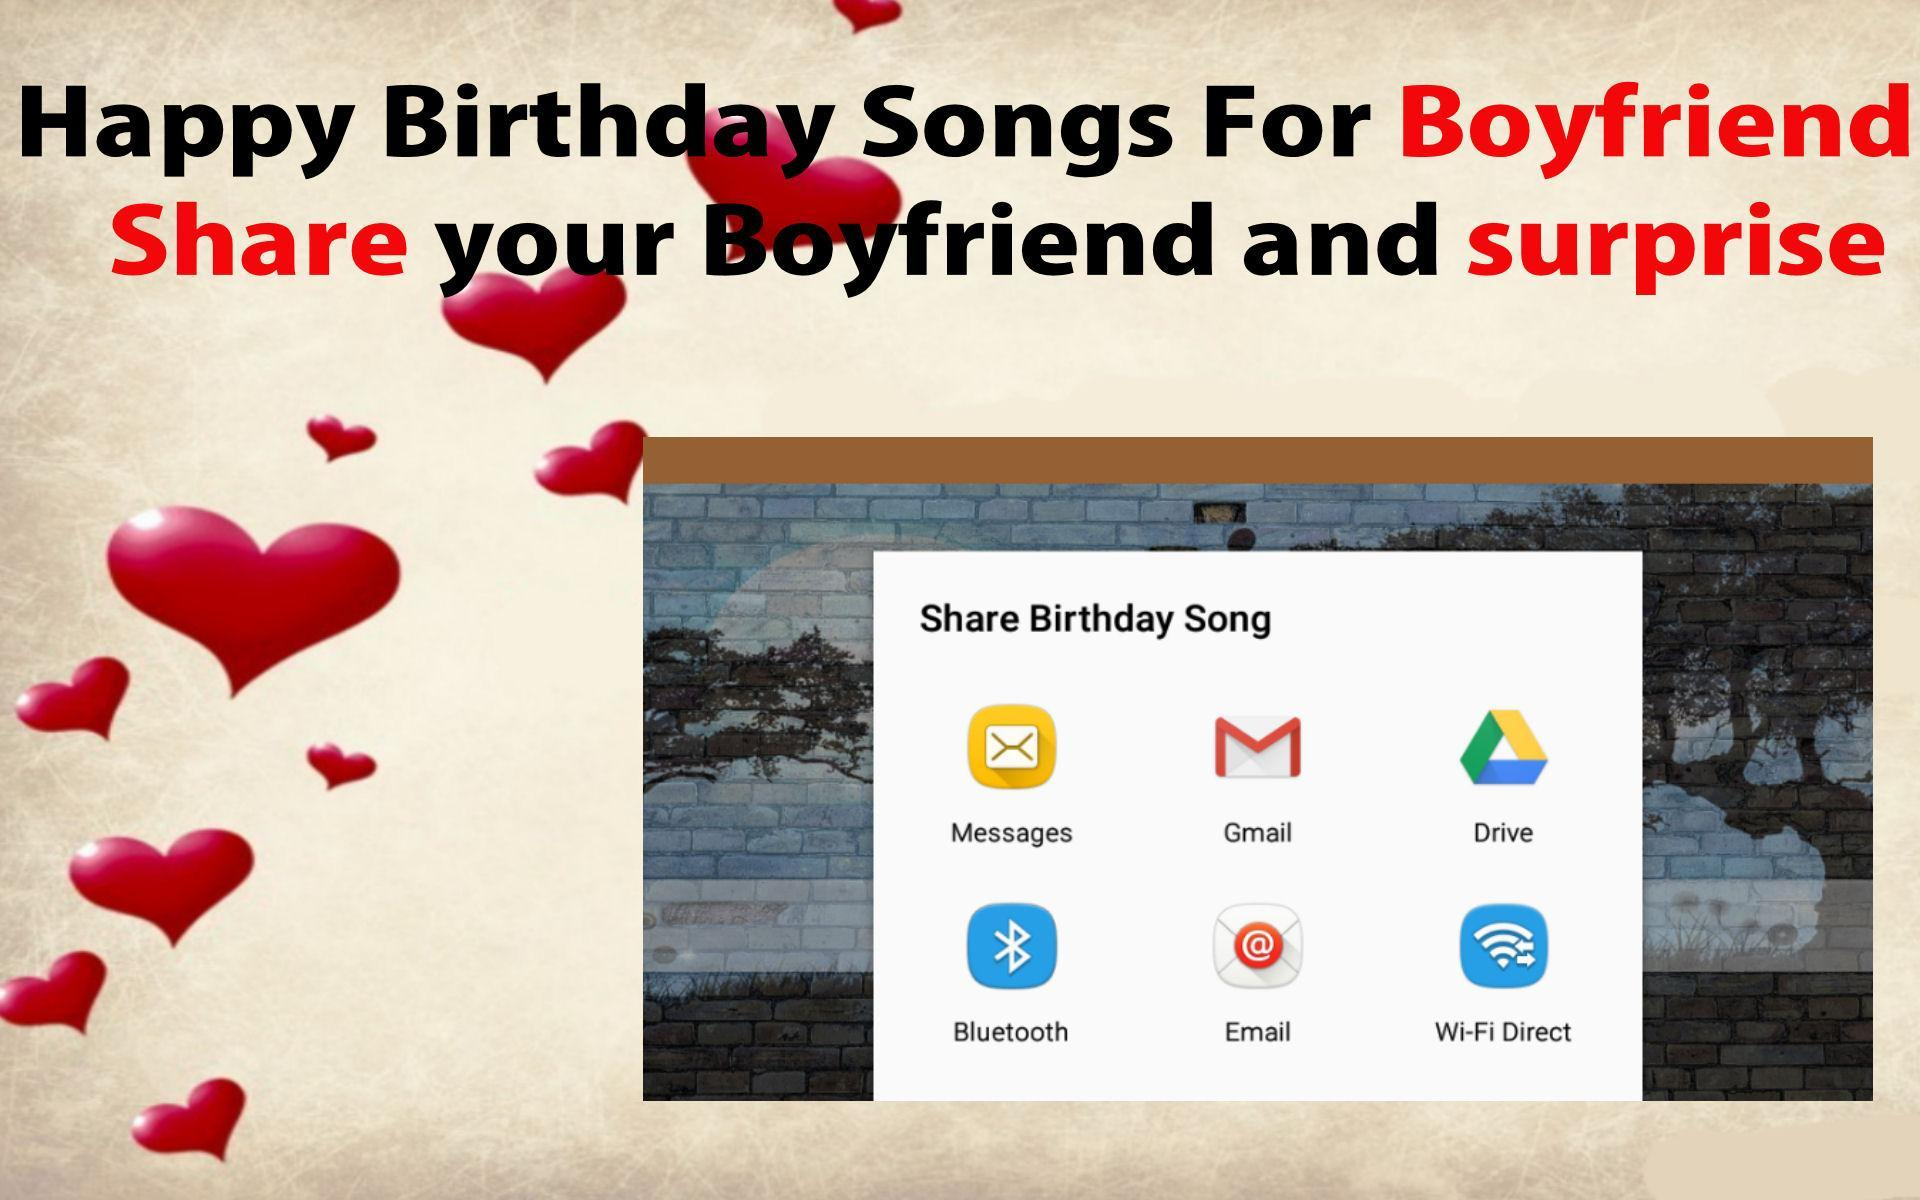 Happy Birthday Songs For Boyfriend For Android Apk Download